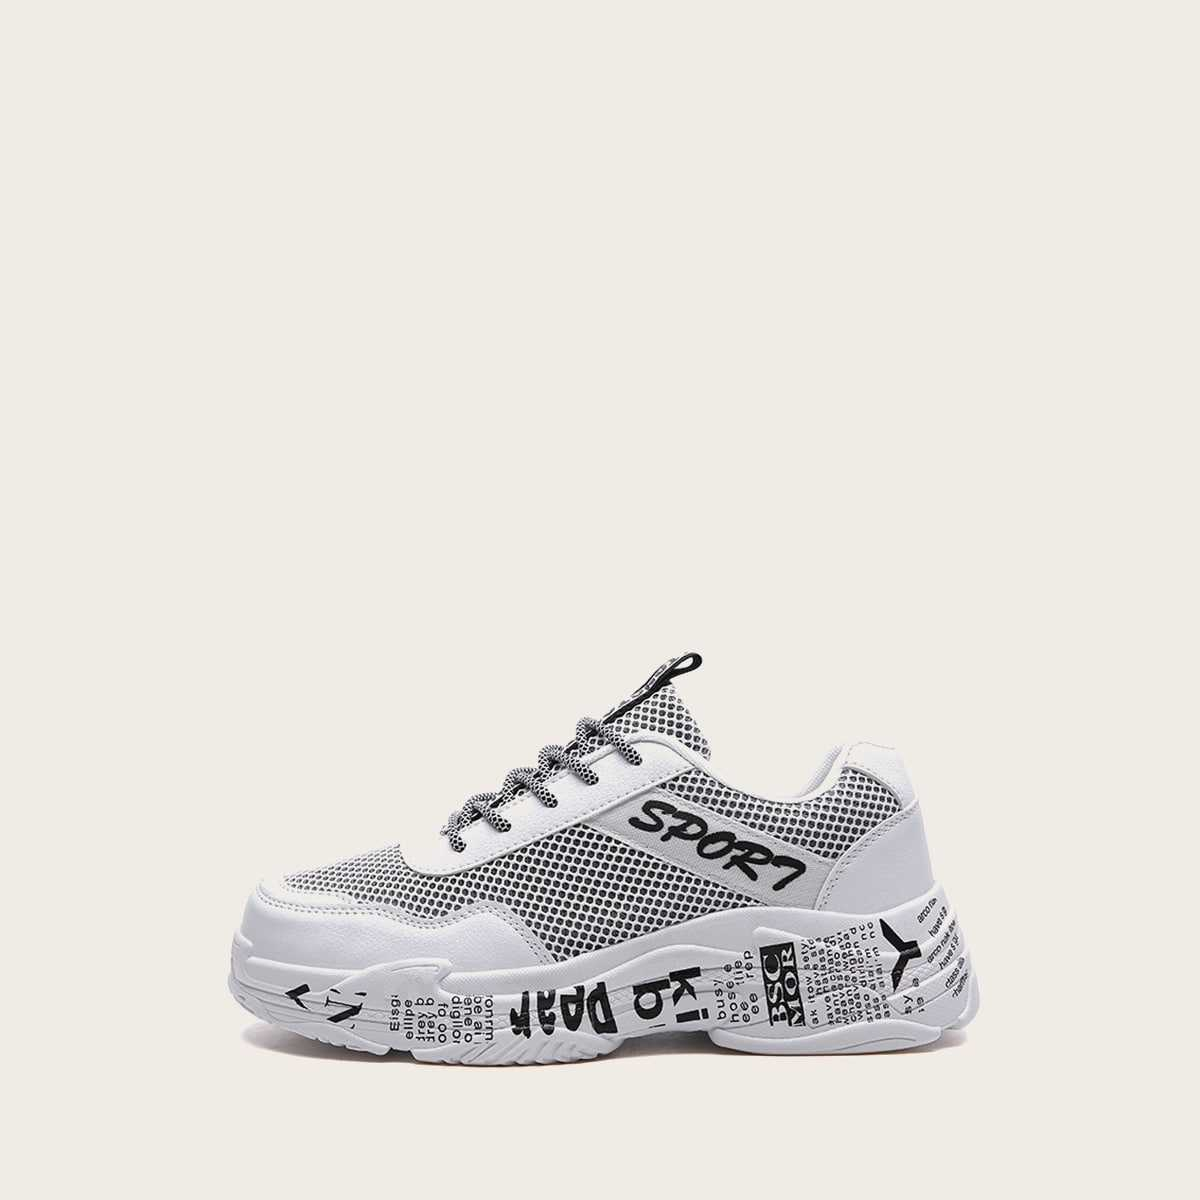 Guys Slogan Print Chunky Sole Trainers in Black and White by ROMWE on GOOFASH